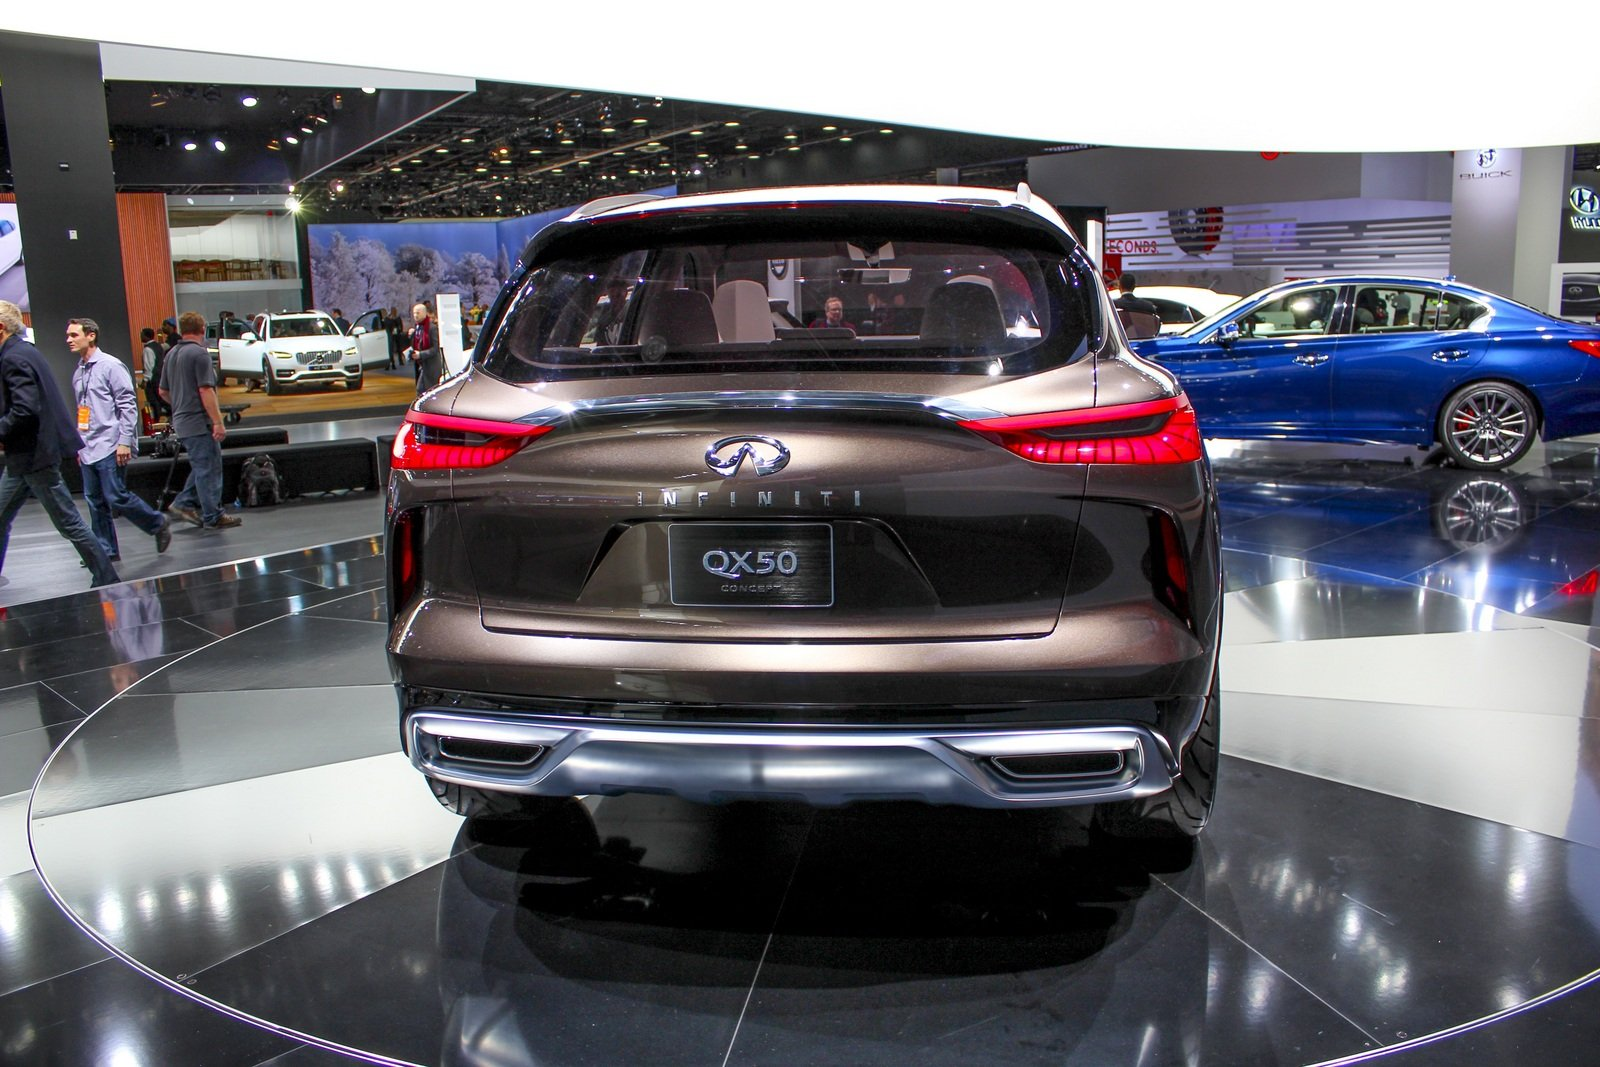 2017 infiniti qx50 concept picture 702018 car review top speed. Black Bedroom Furniture Sets. Home Design Ideas